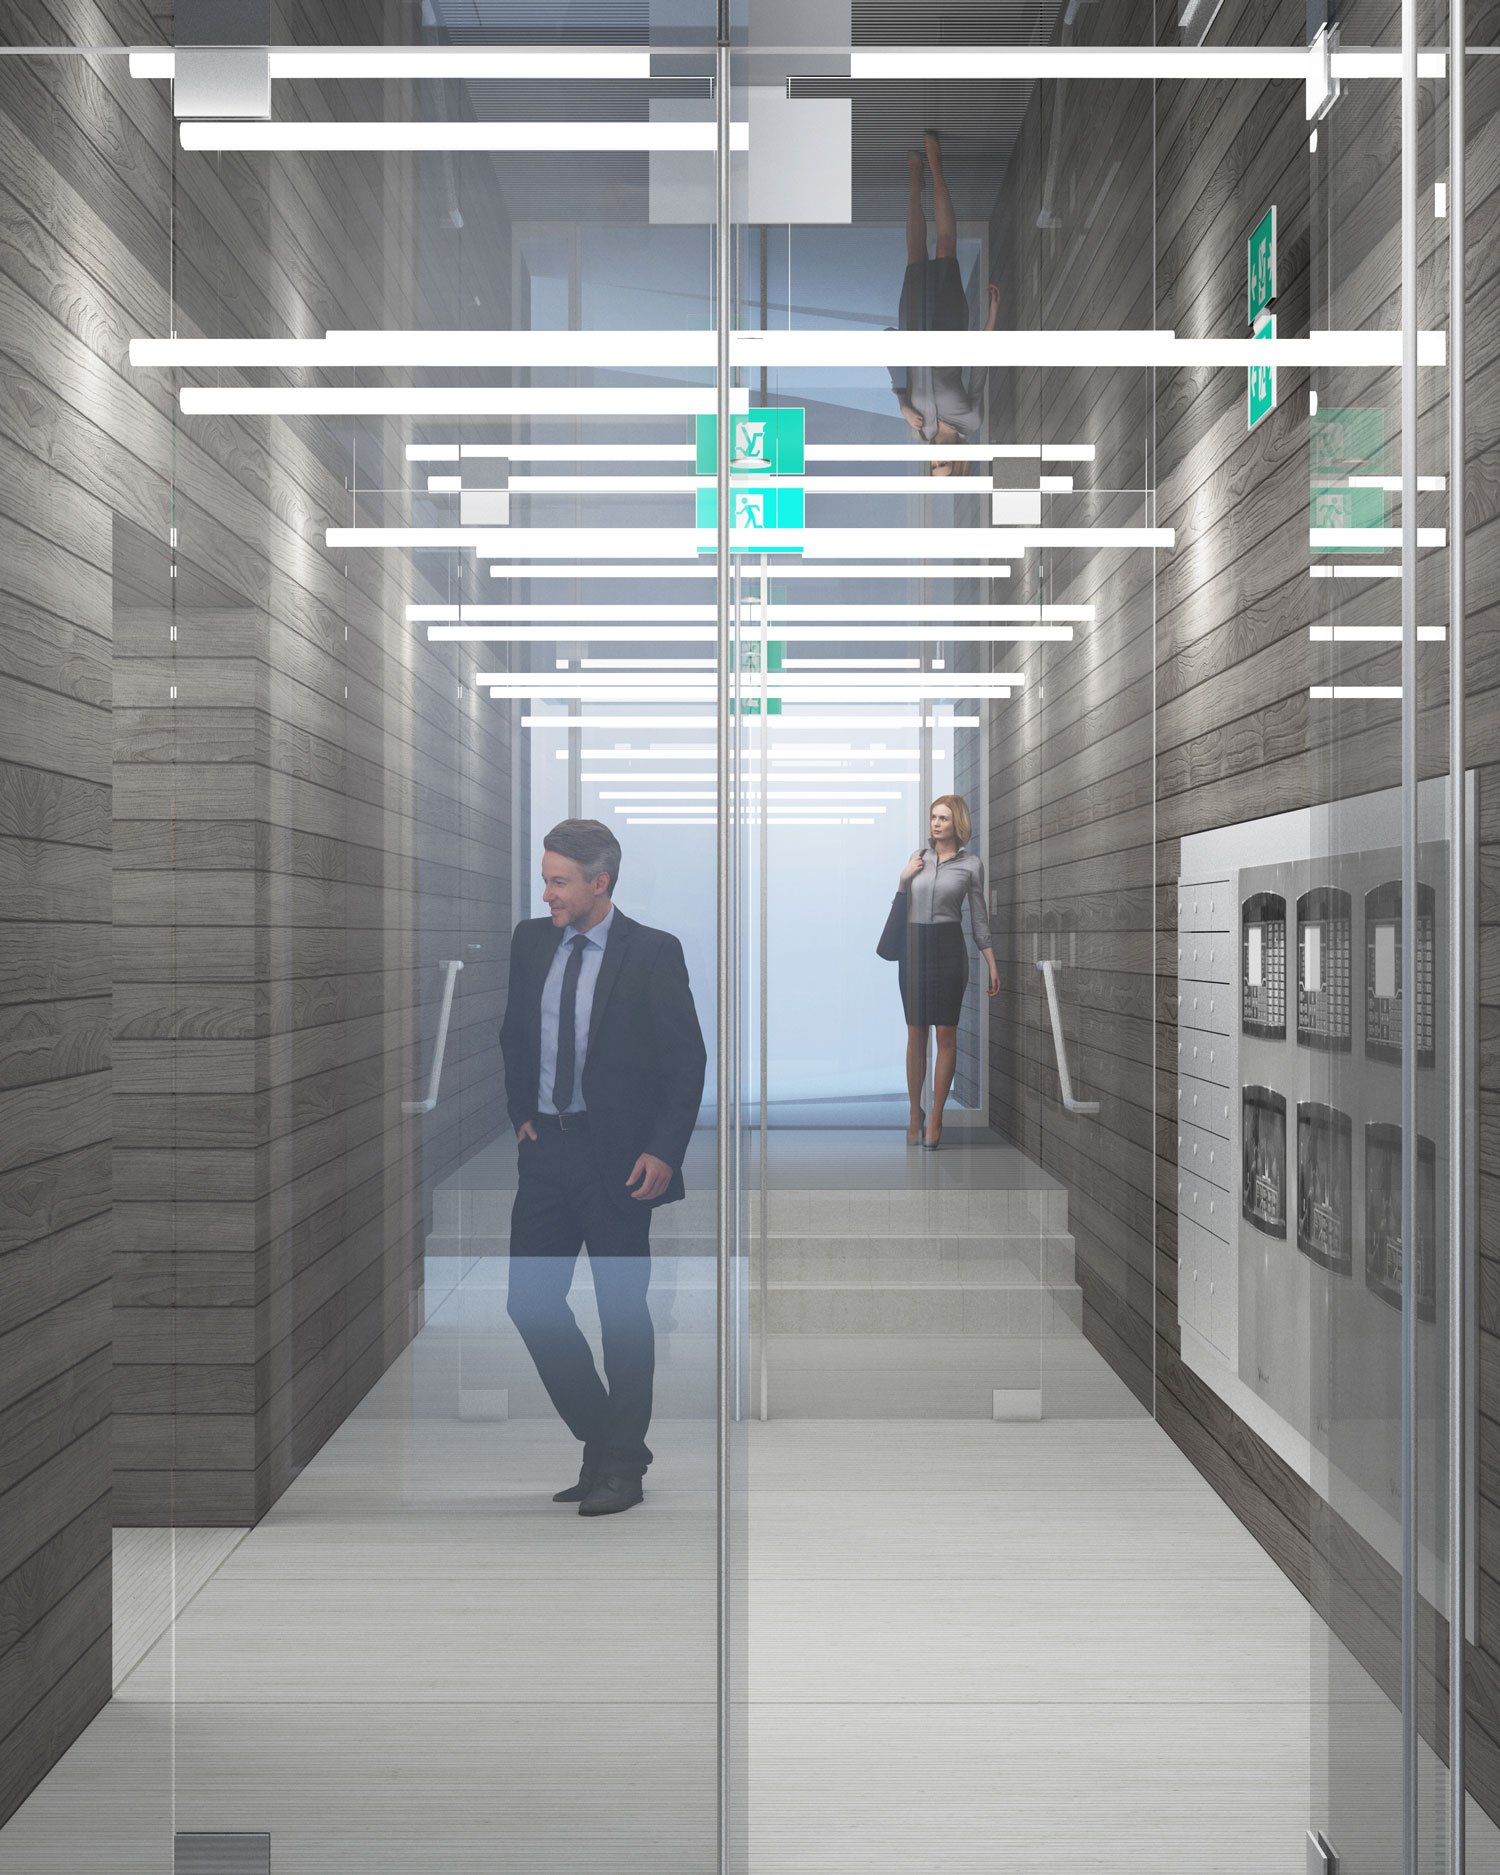 Some New Renderings Of The Office Space For Sale At Vancouver House. Not  Sure On Pricing... Apparently Retail To Include Local Micro Brewery (or  Two)... ...